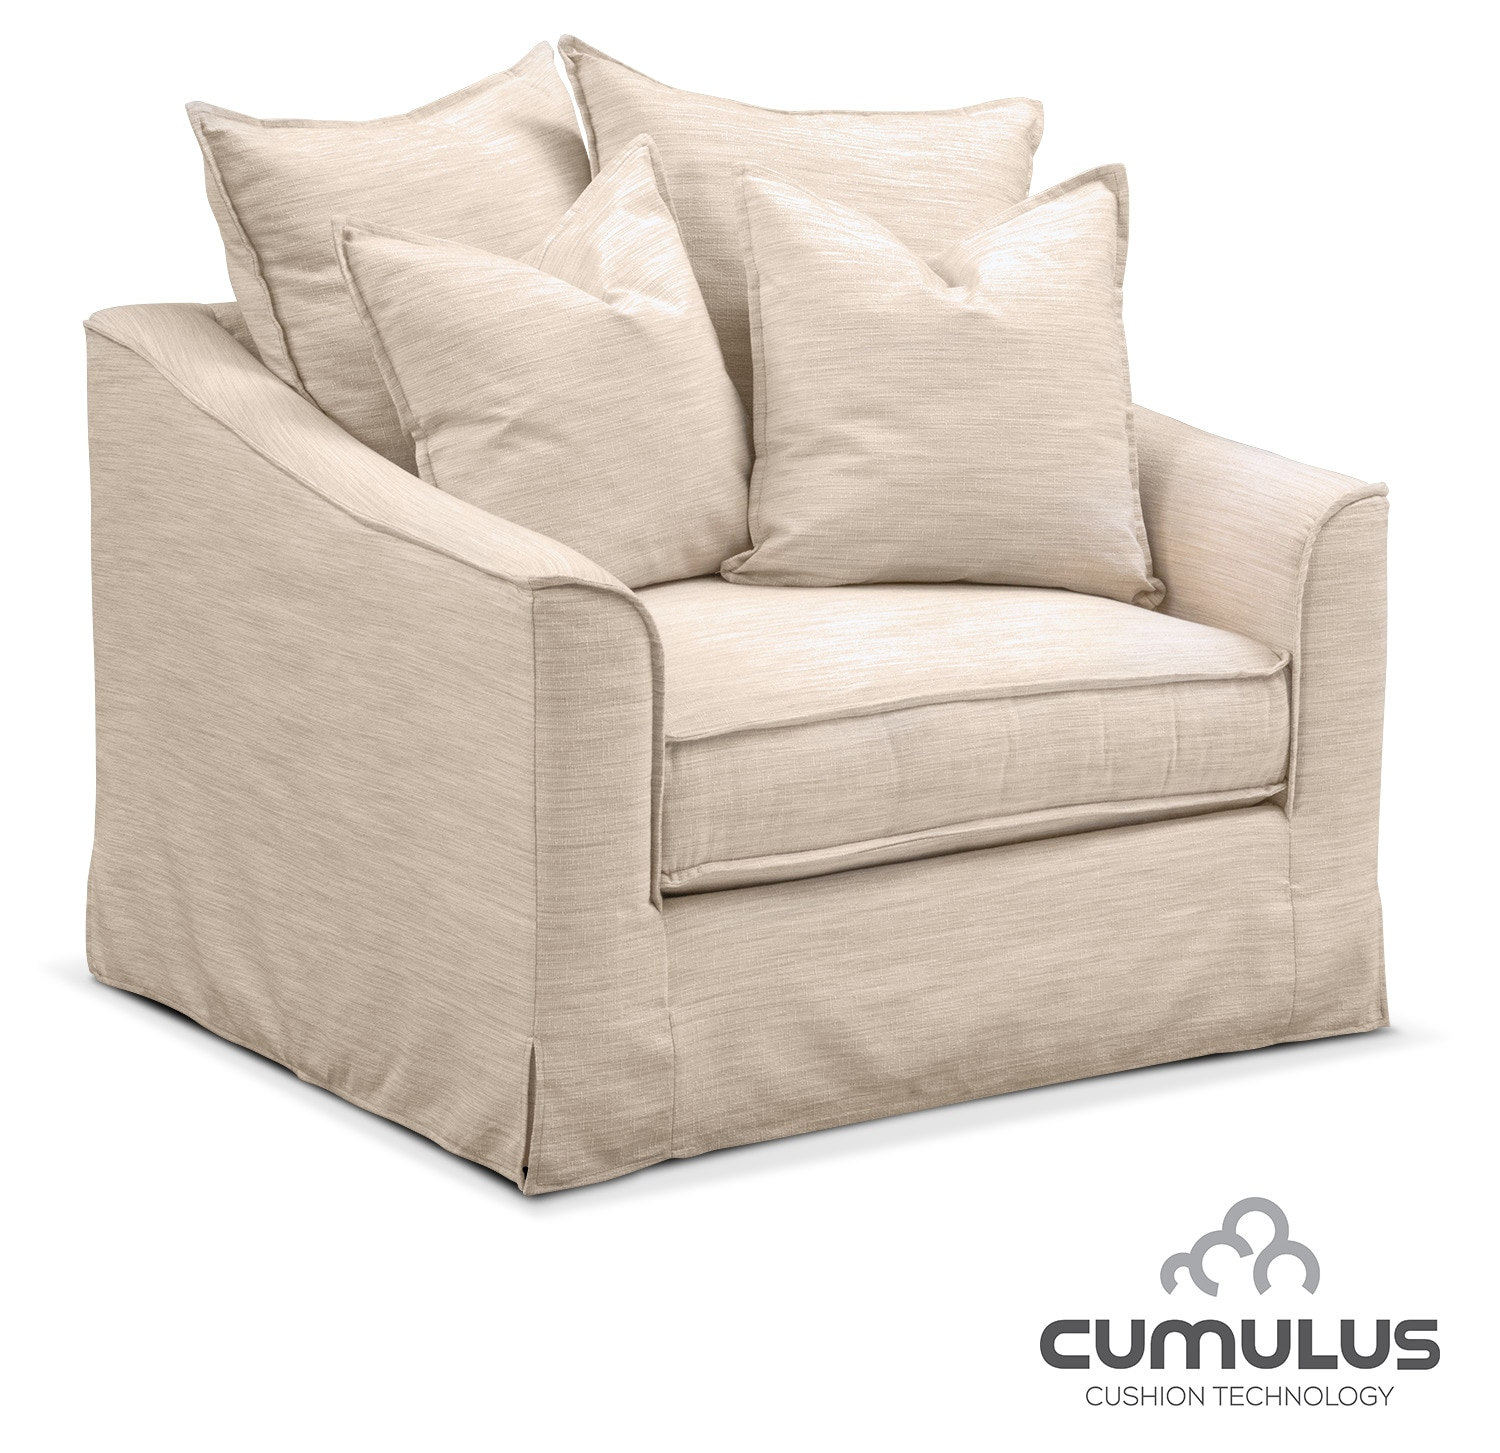 Living Room Furniture - Brooke Cumulus Chair and a Half - Ivory  sc 1 st  Value City Furniture & Brooke Cumulus Chair and a Half - Ivory | Value City Furniture and ...